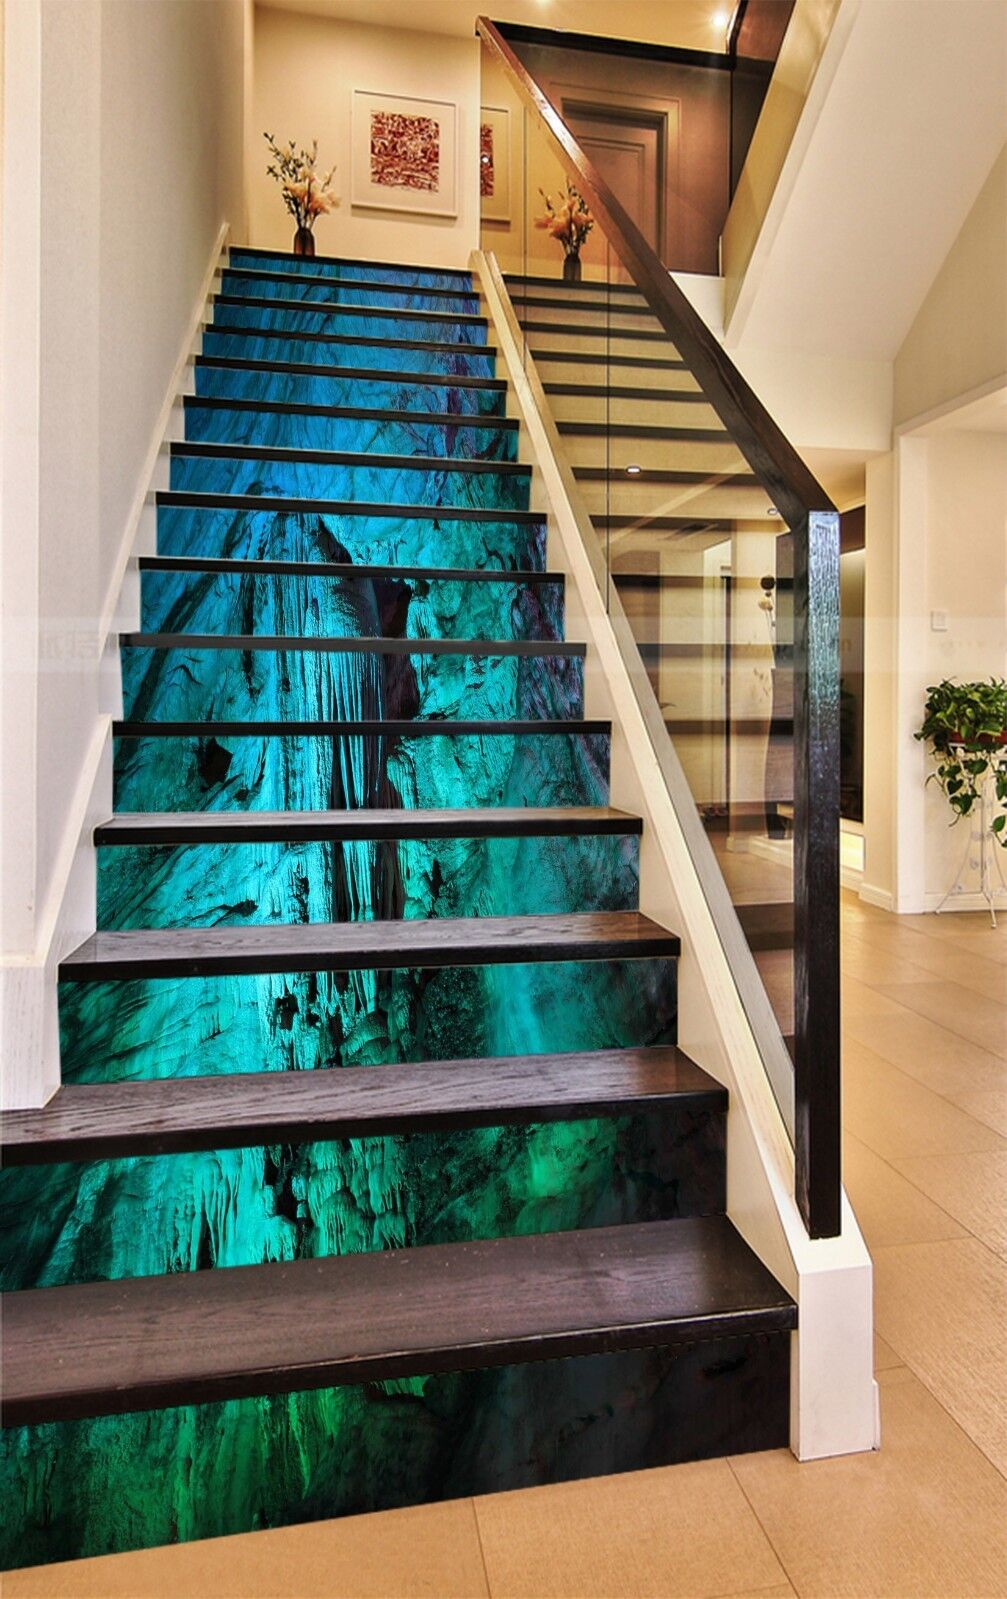 3D Limestone cave 7 Stair Risers Decoration Photo Mural Vinyl Decal Wallpaper UK